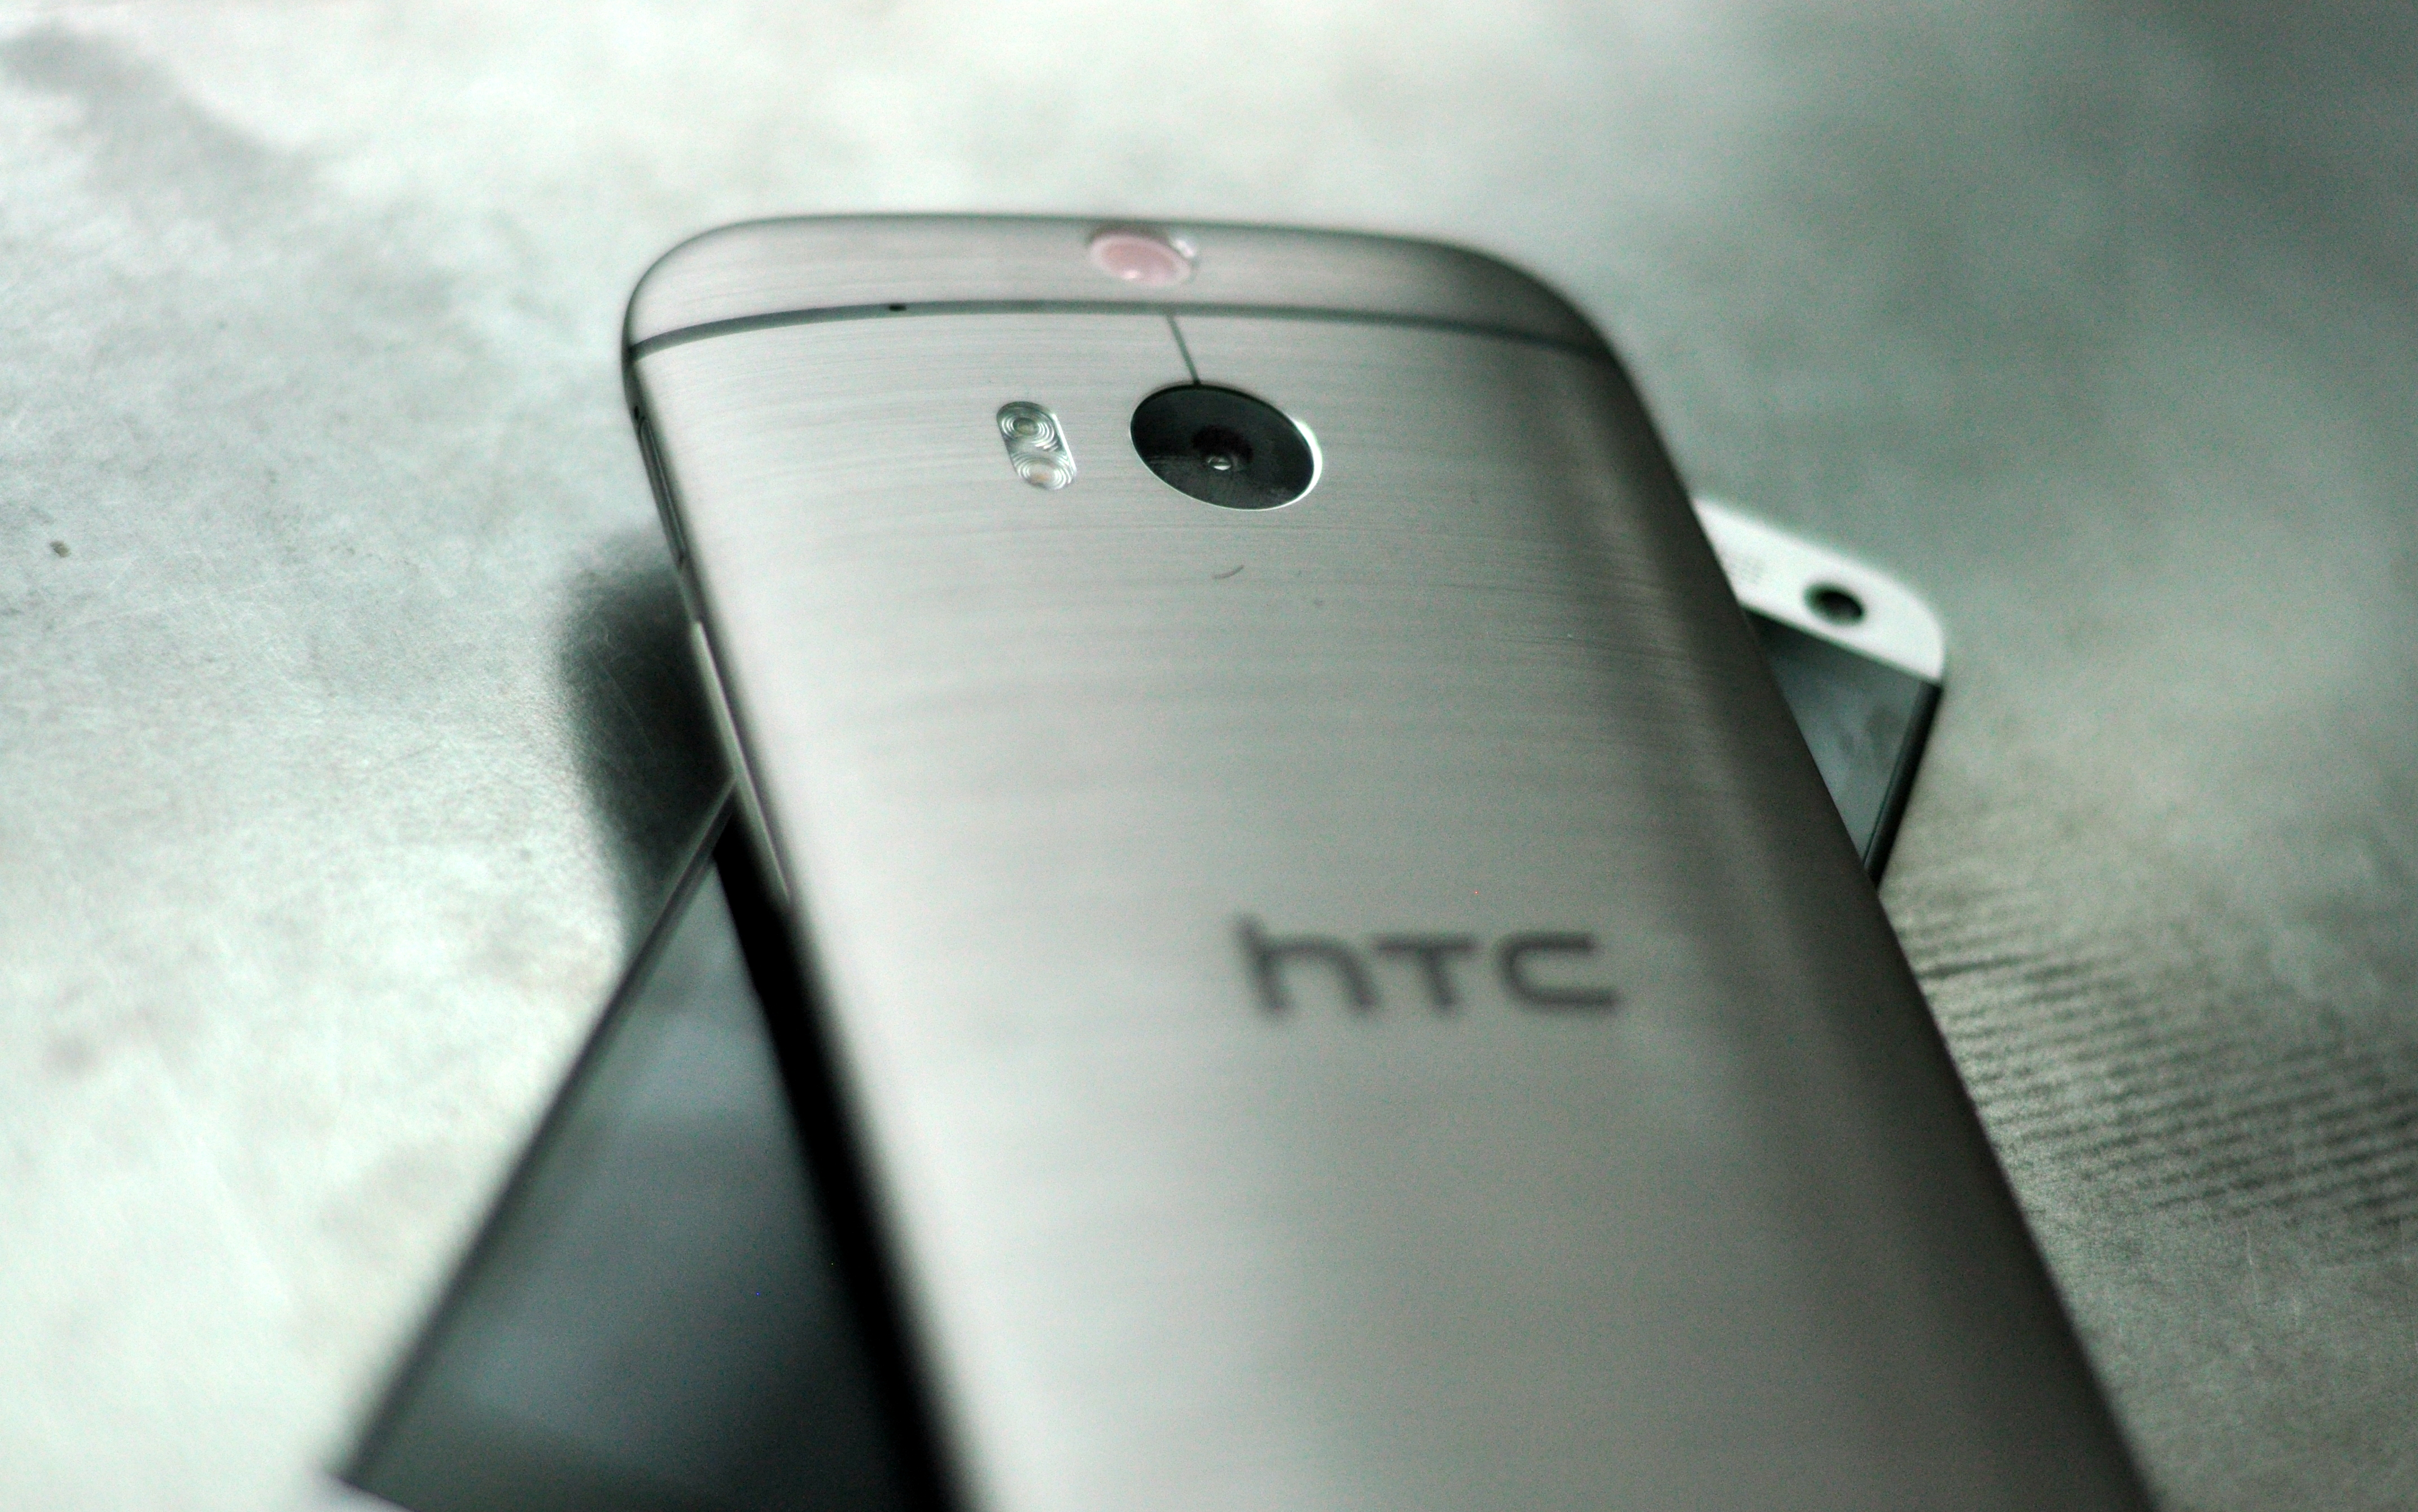 Plastic HTC One M8 Rumored For Chinese Market